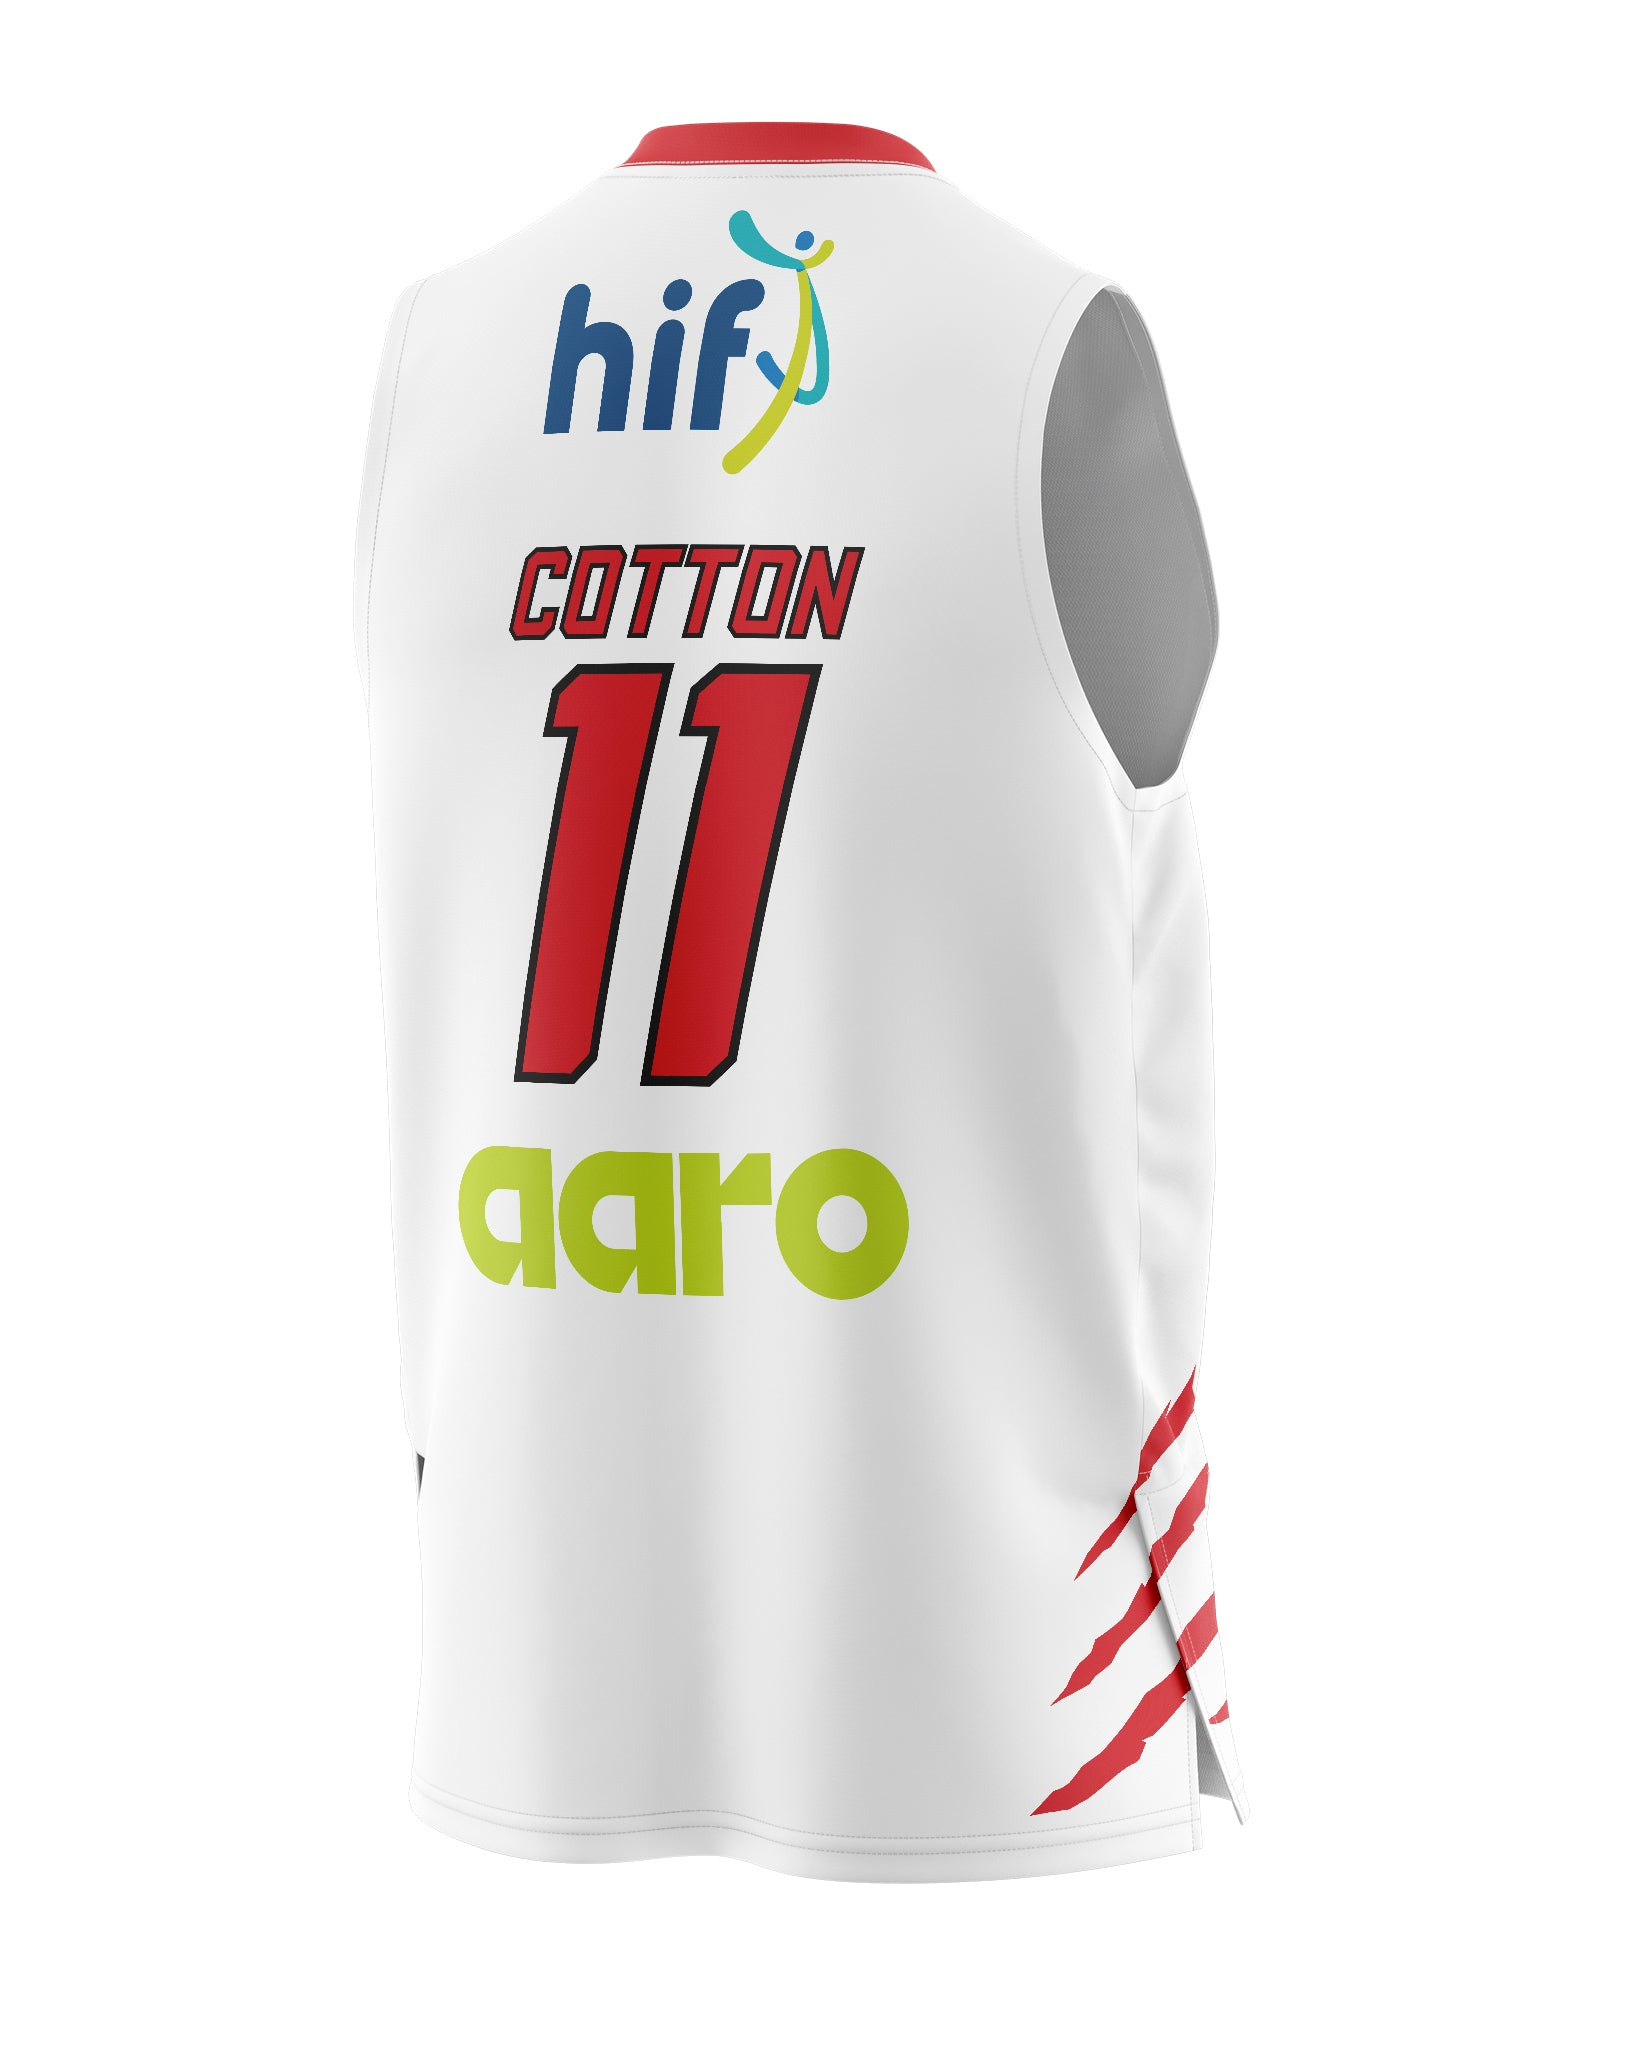 Perth Wildcats 20/21 Authentic Away Jersey - Bryce Cotton